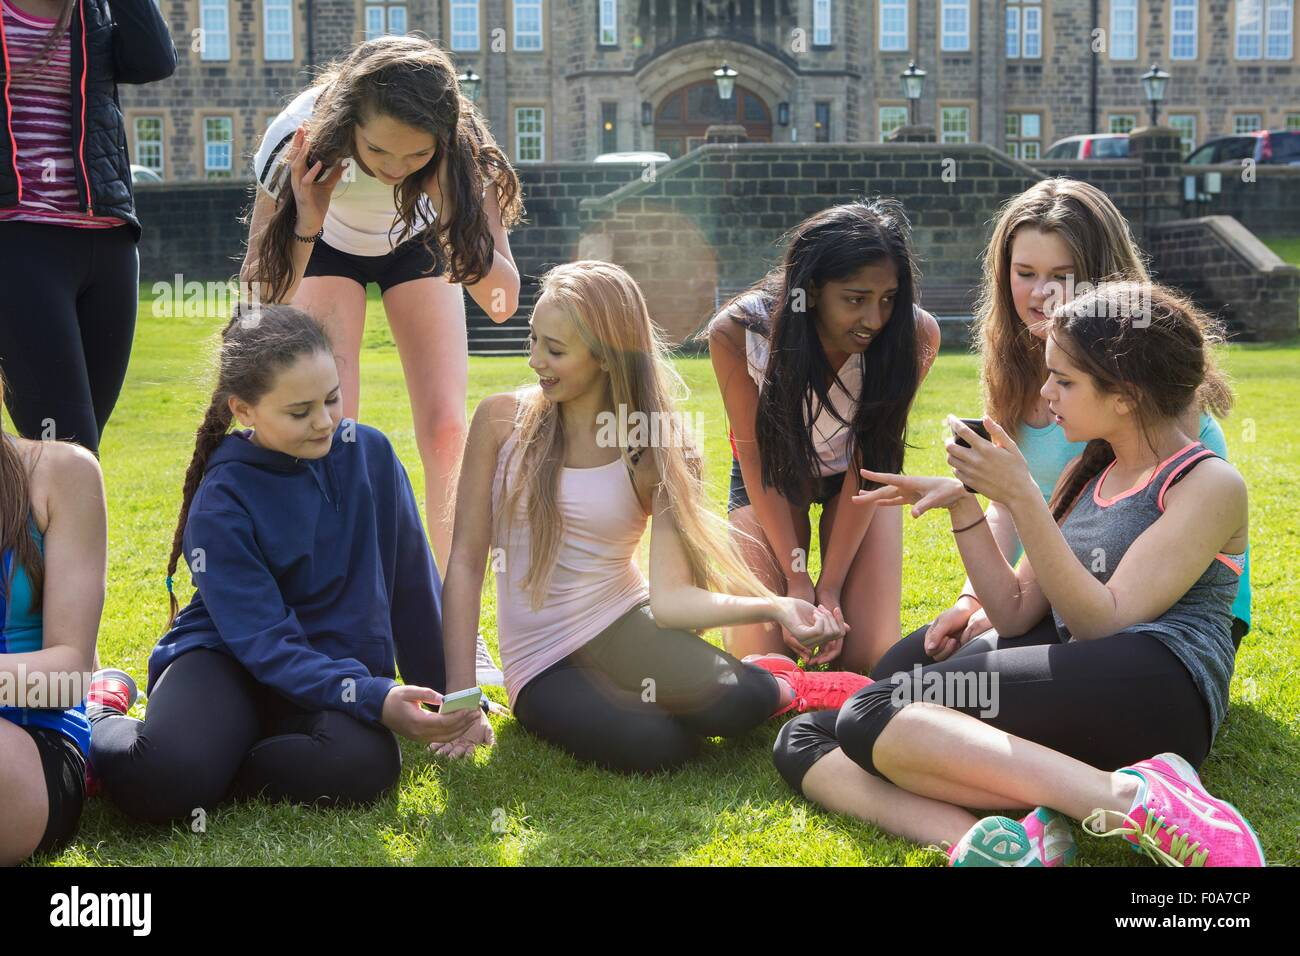 Group of students taking break in field - Stock Image